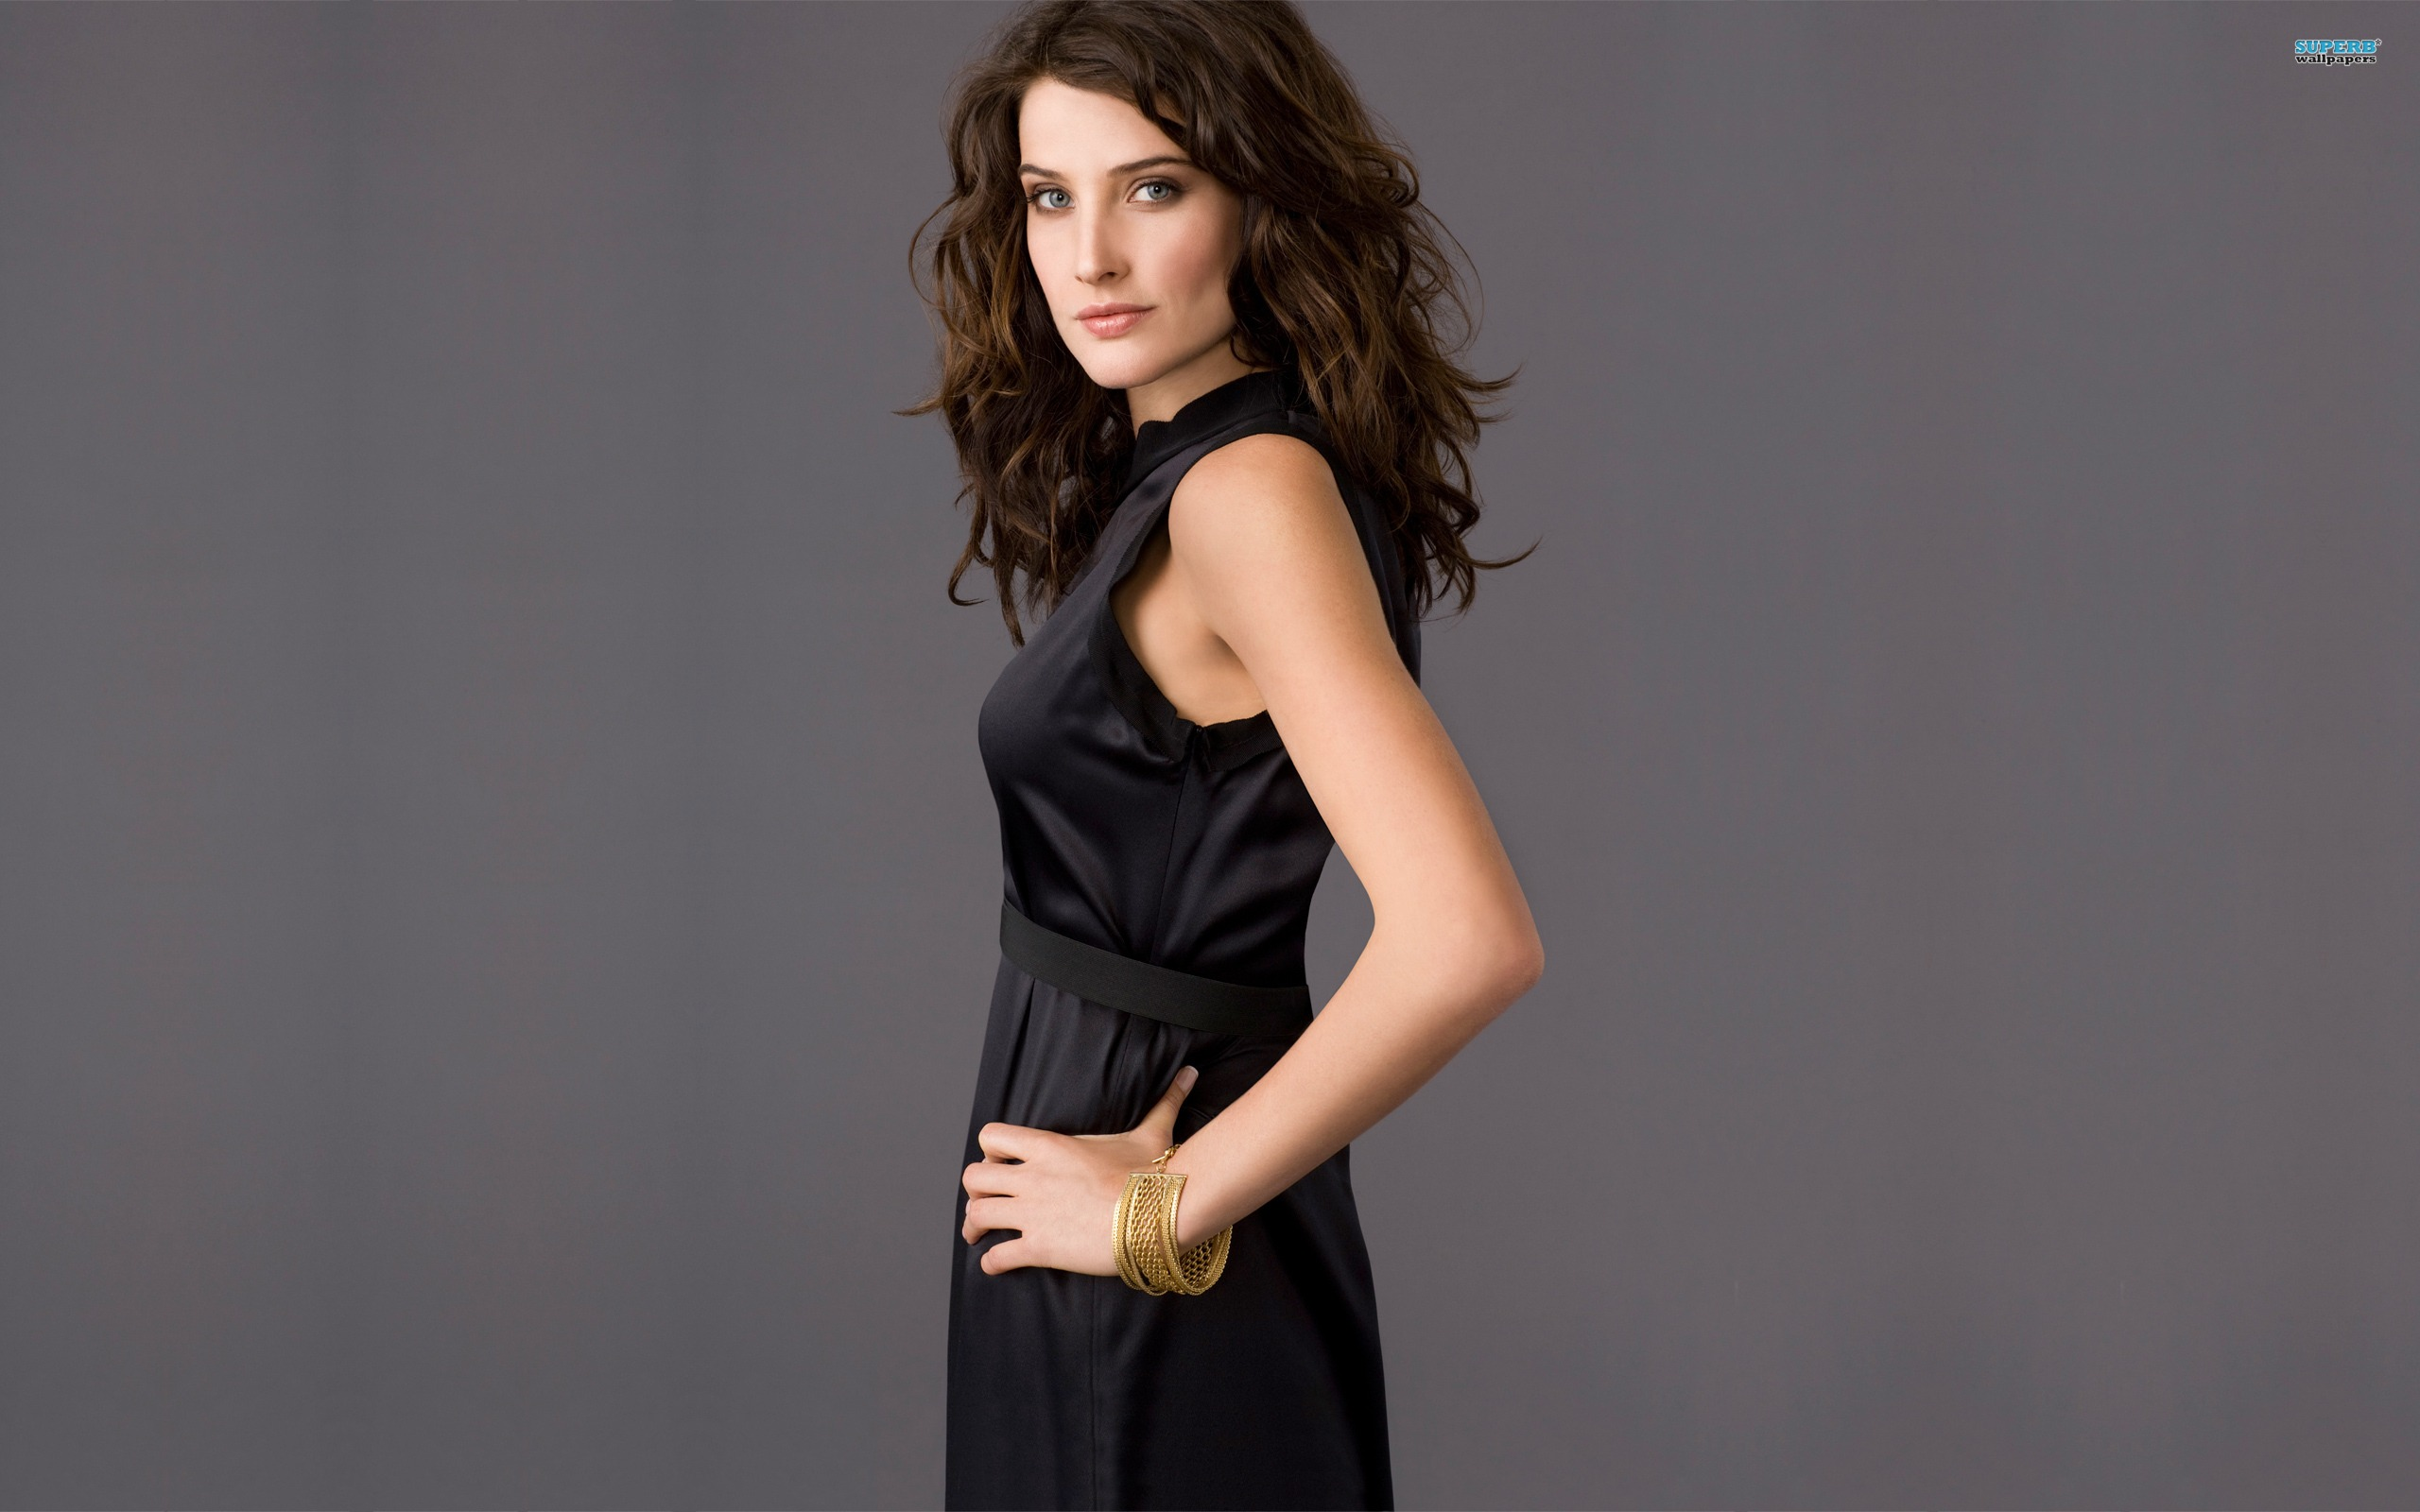 Cobie Smulders #012 - 2560x1600 Wallpapers Pictures Photos Images